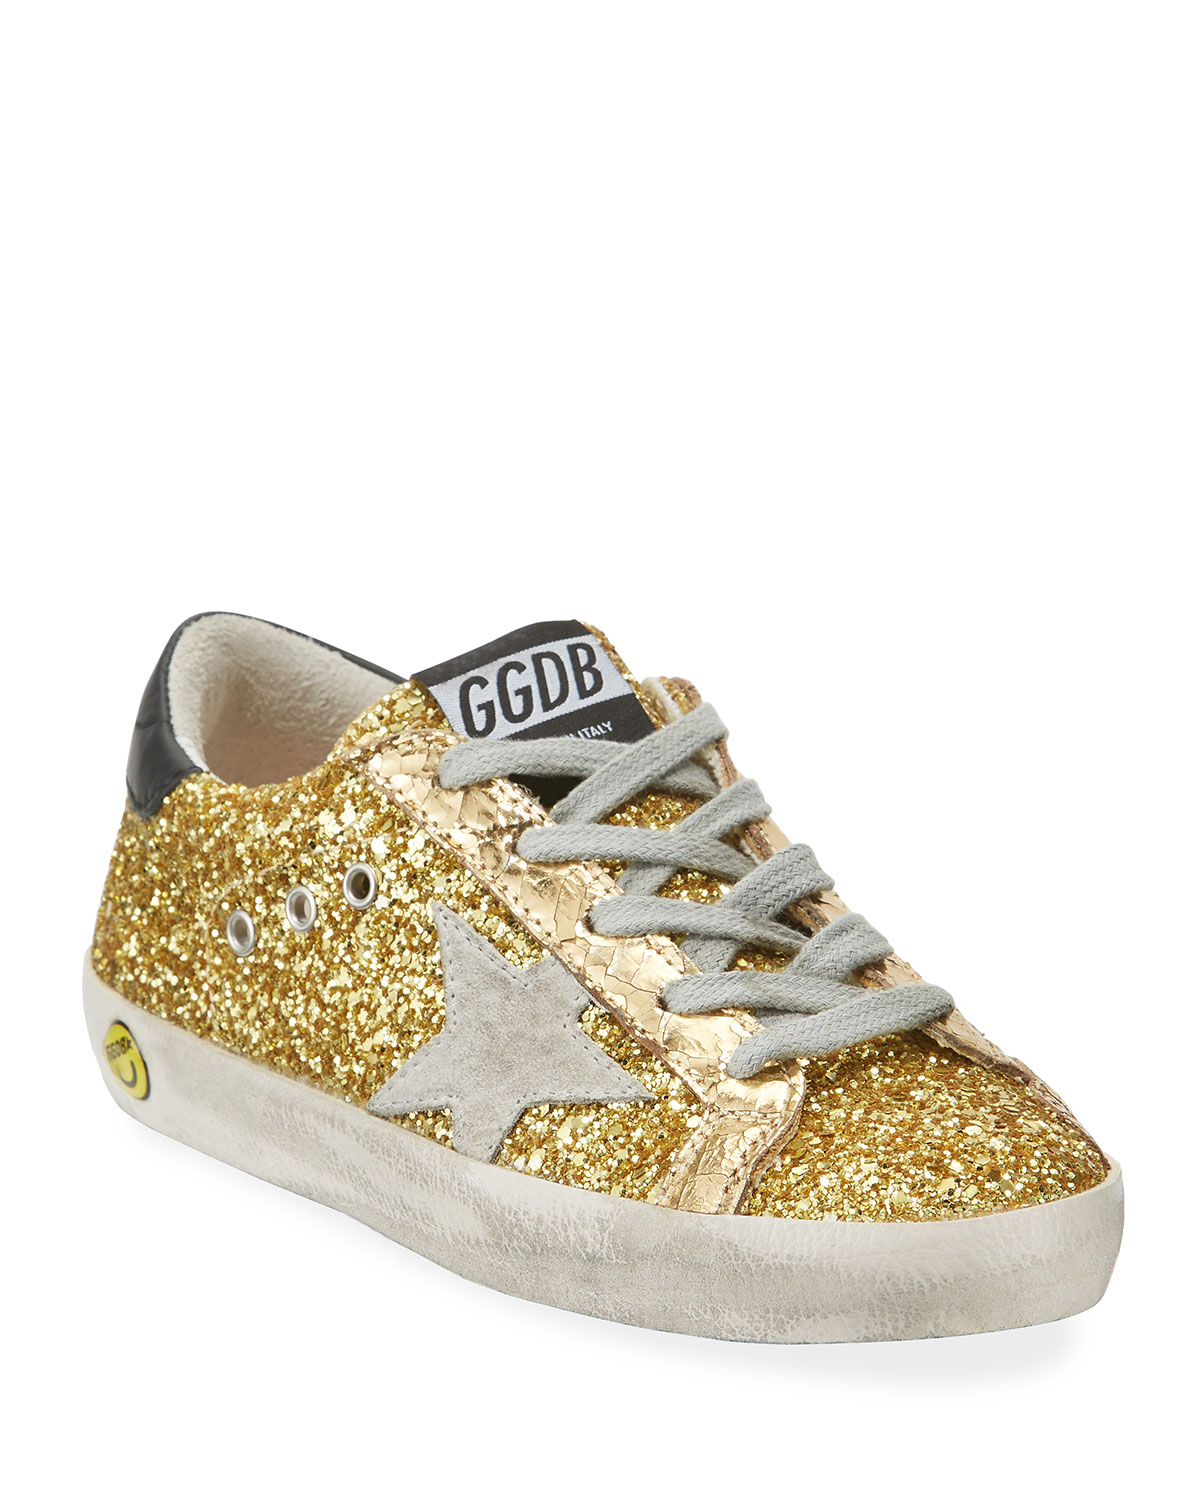 the latest 2b1f1 ff6e1 Golden Goose Superstar Glitter Fabric Low-Top Sneakers, Toddler Kids